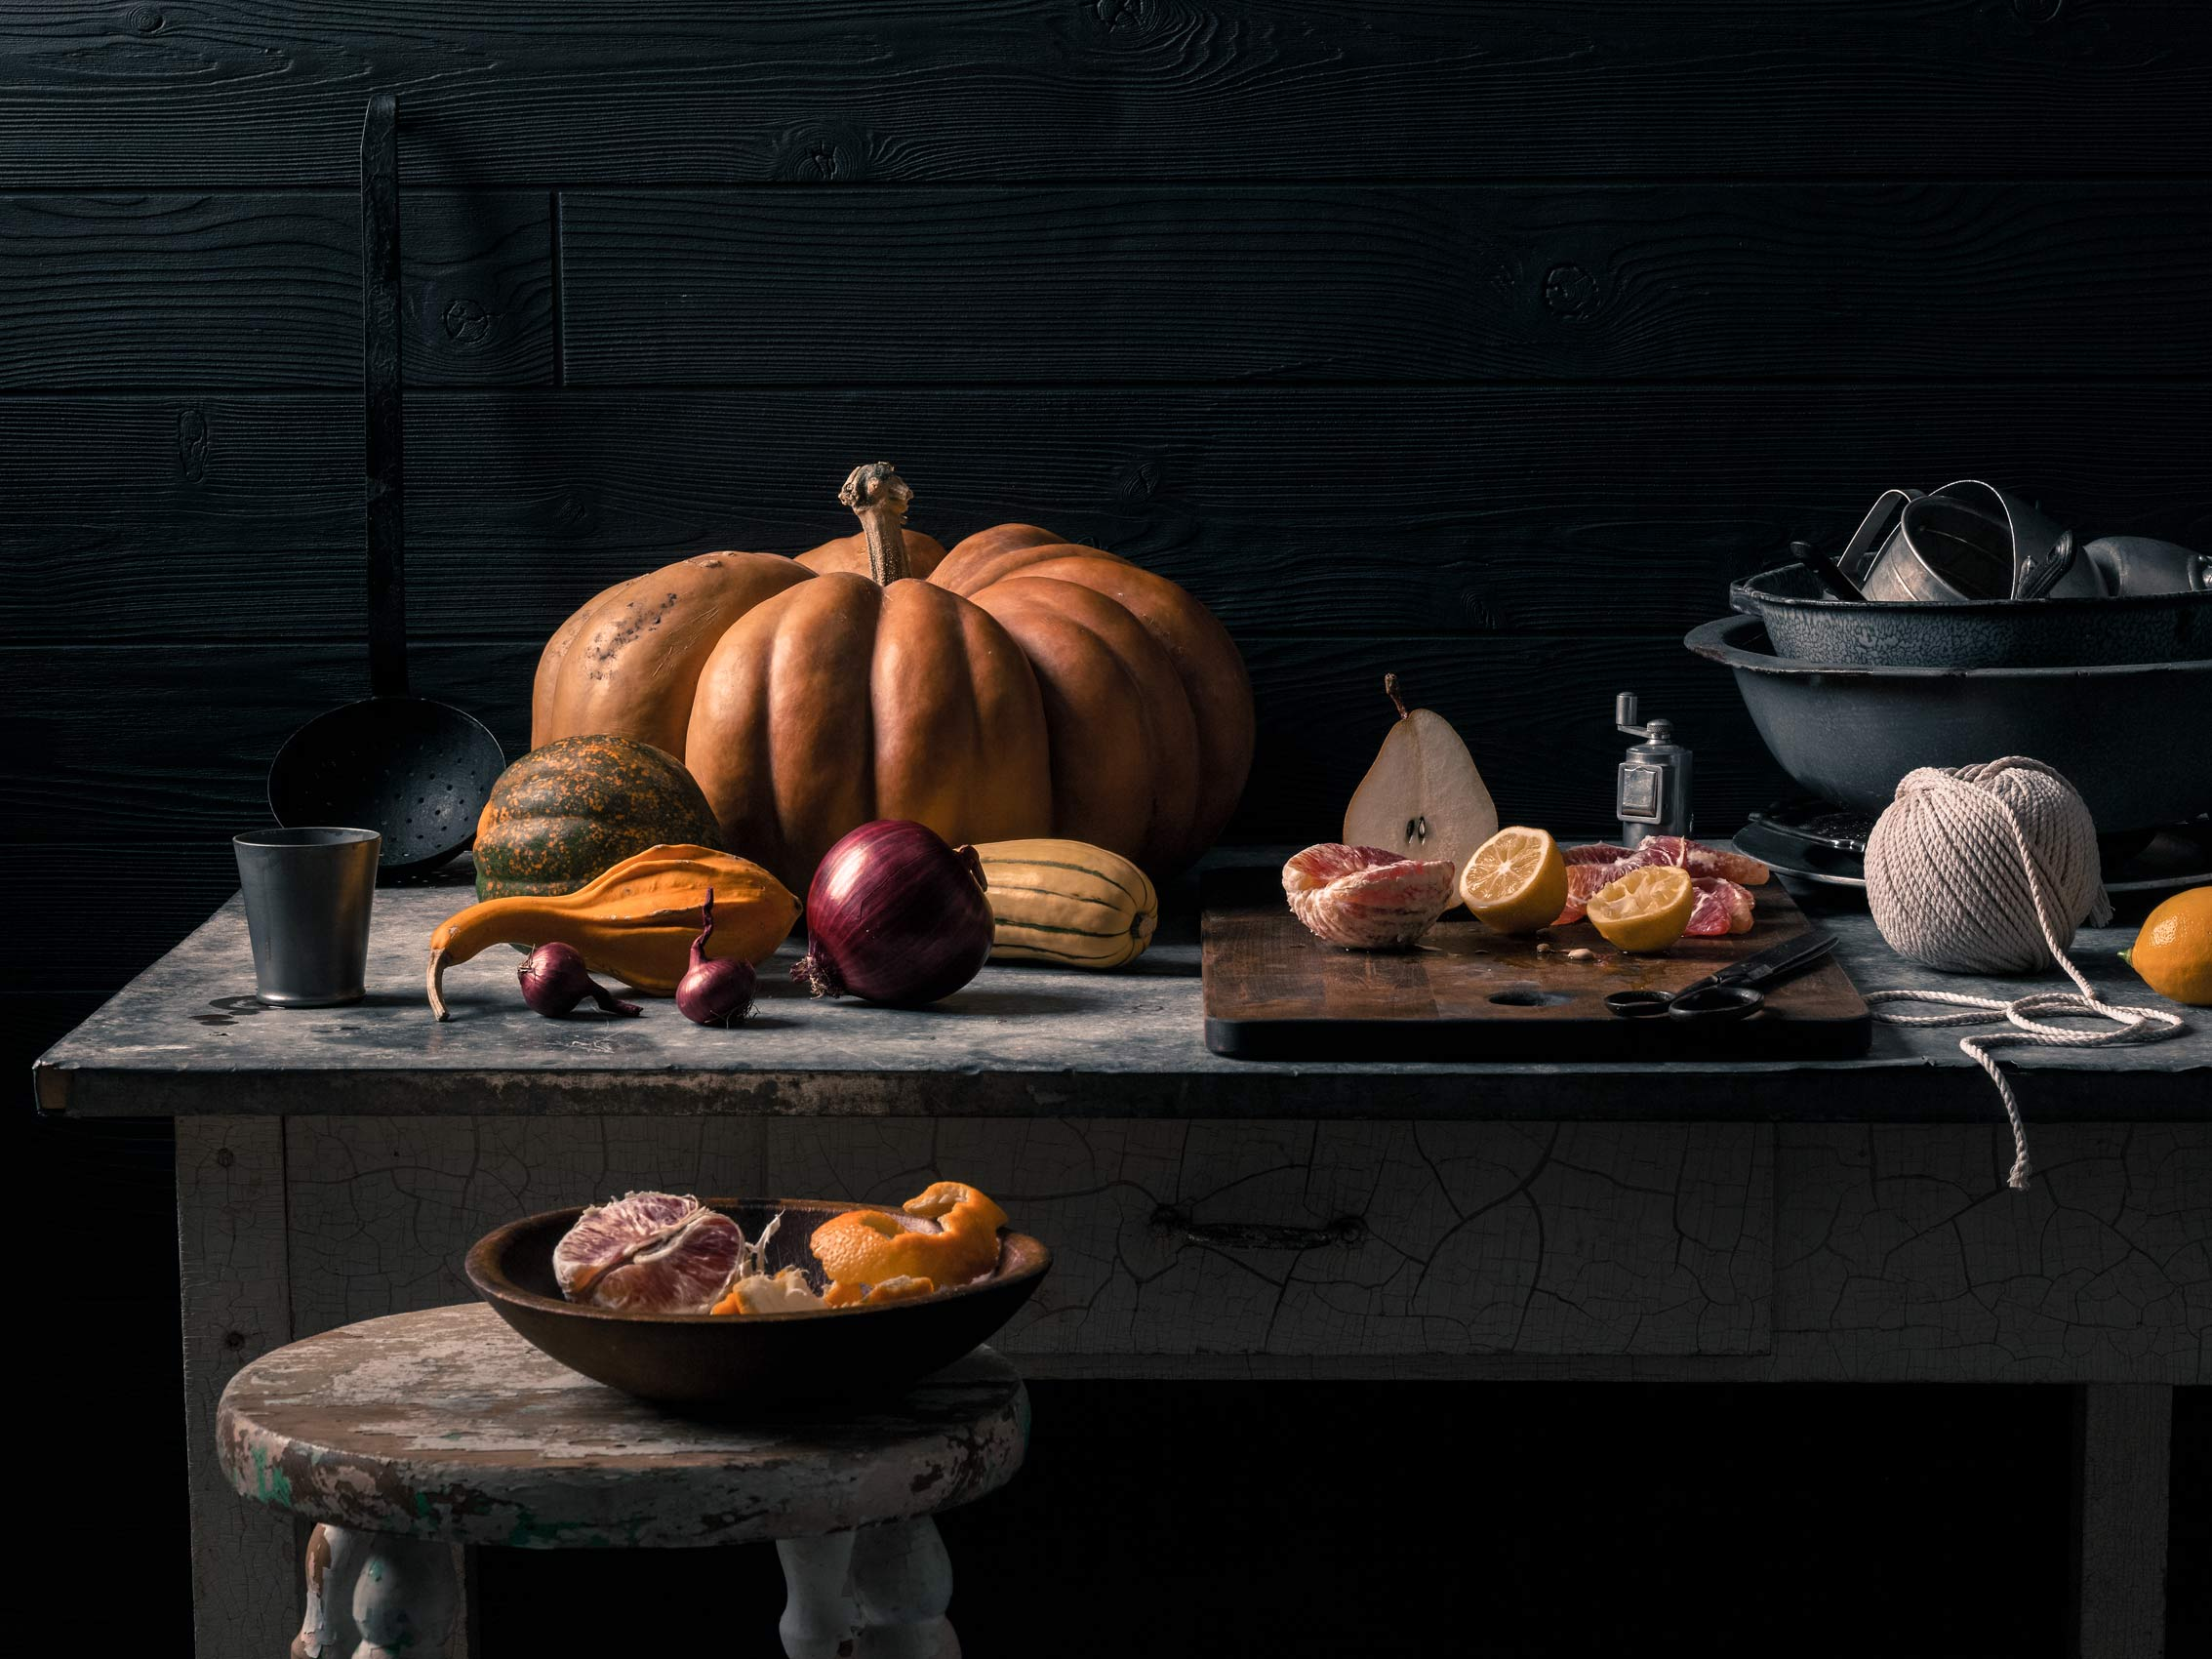 Dutch Master food still life of a Fall bounty table